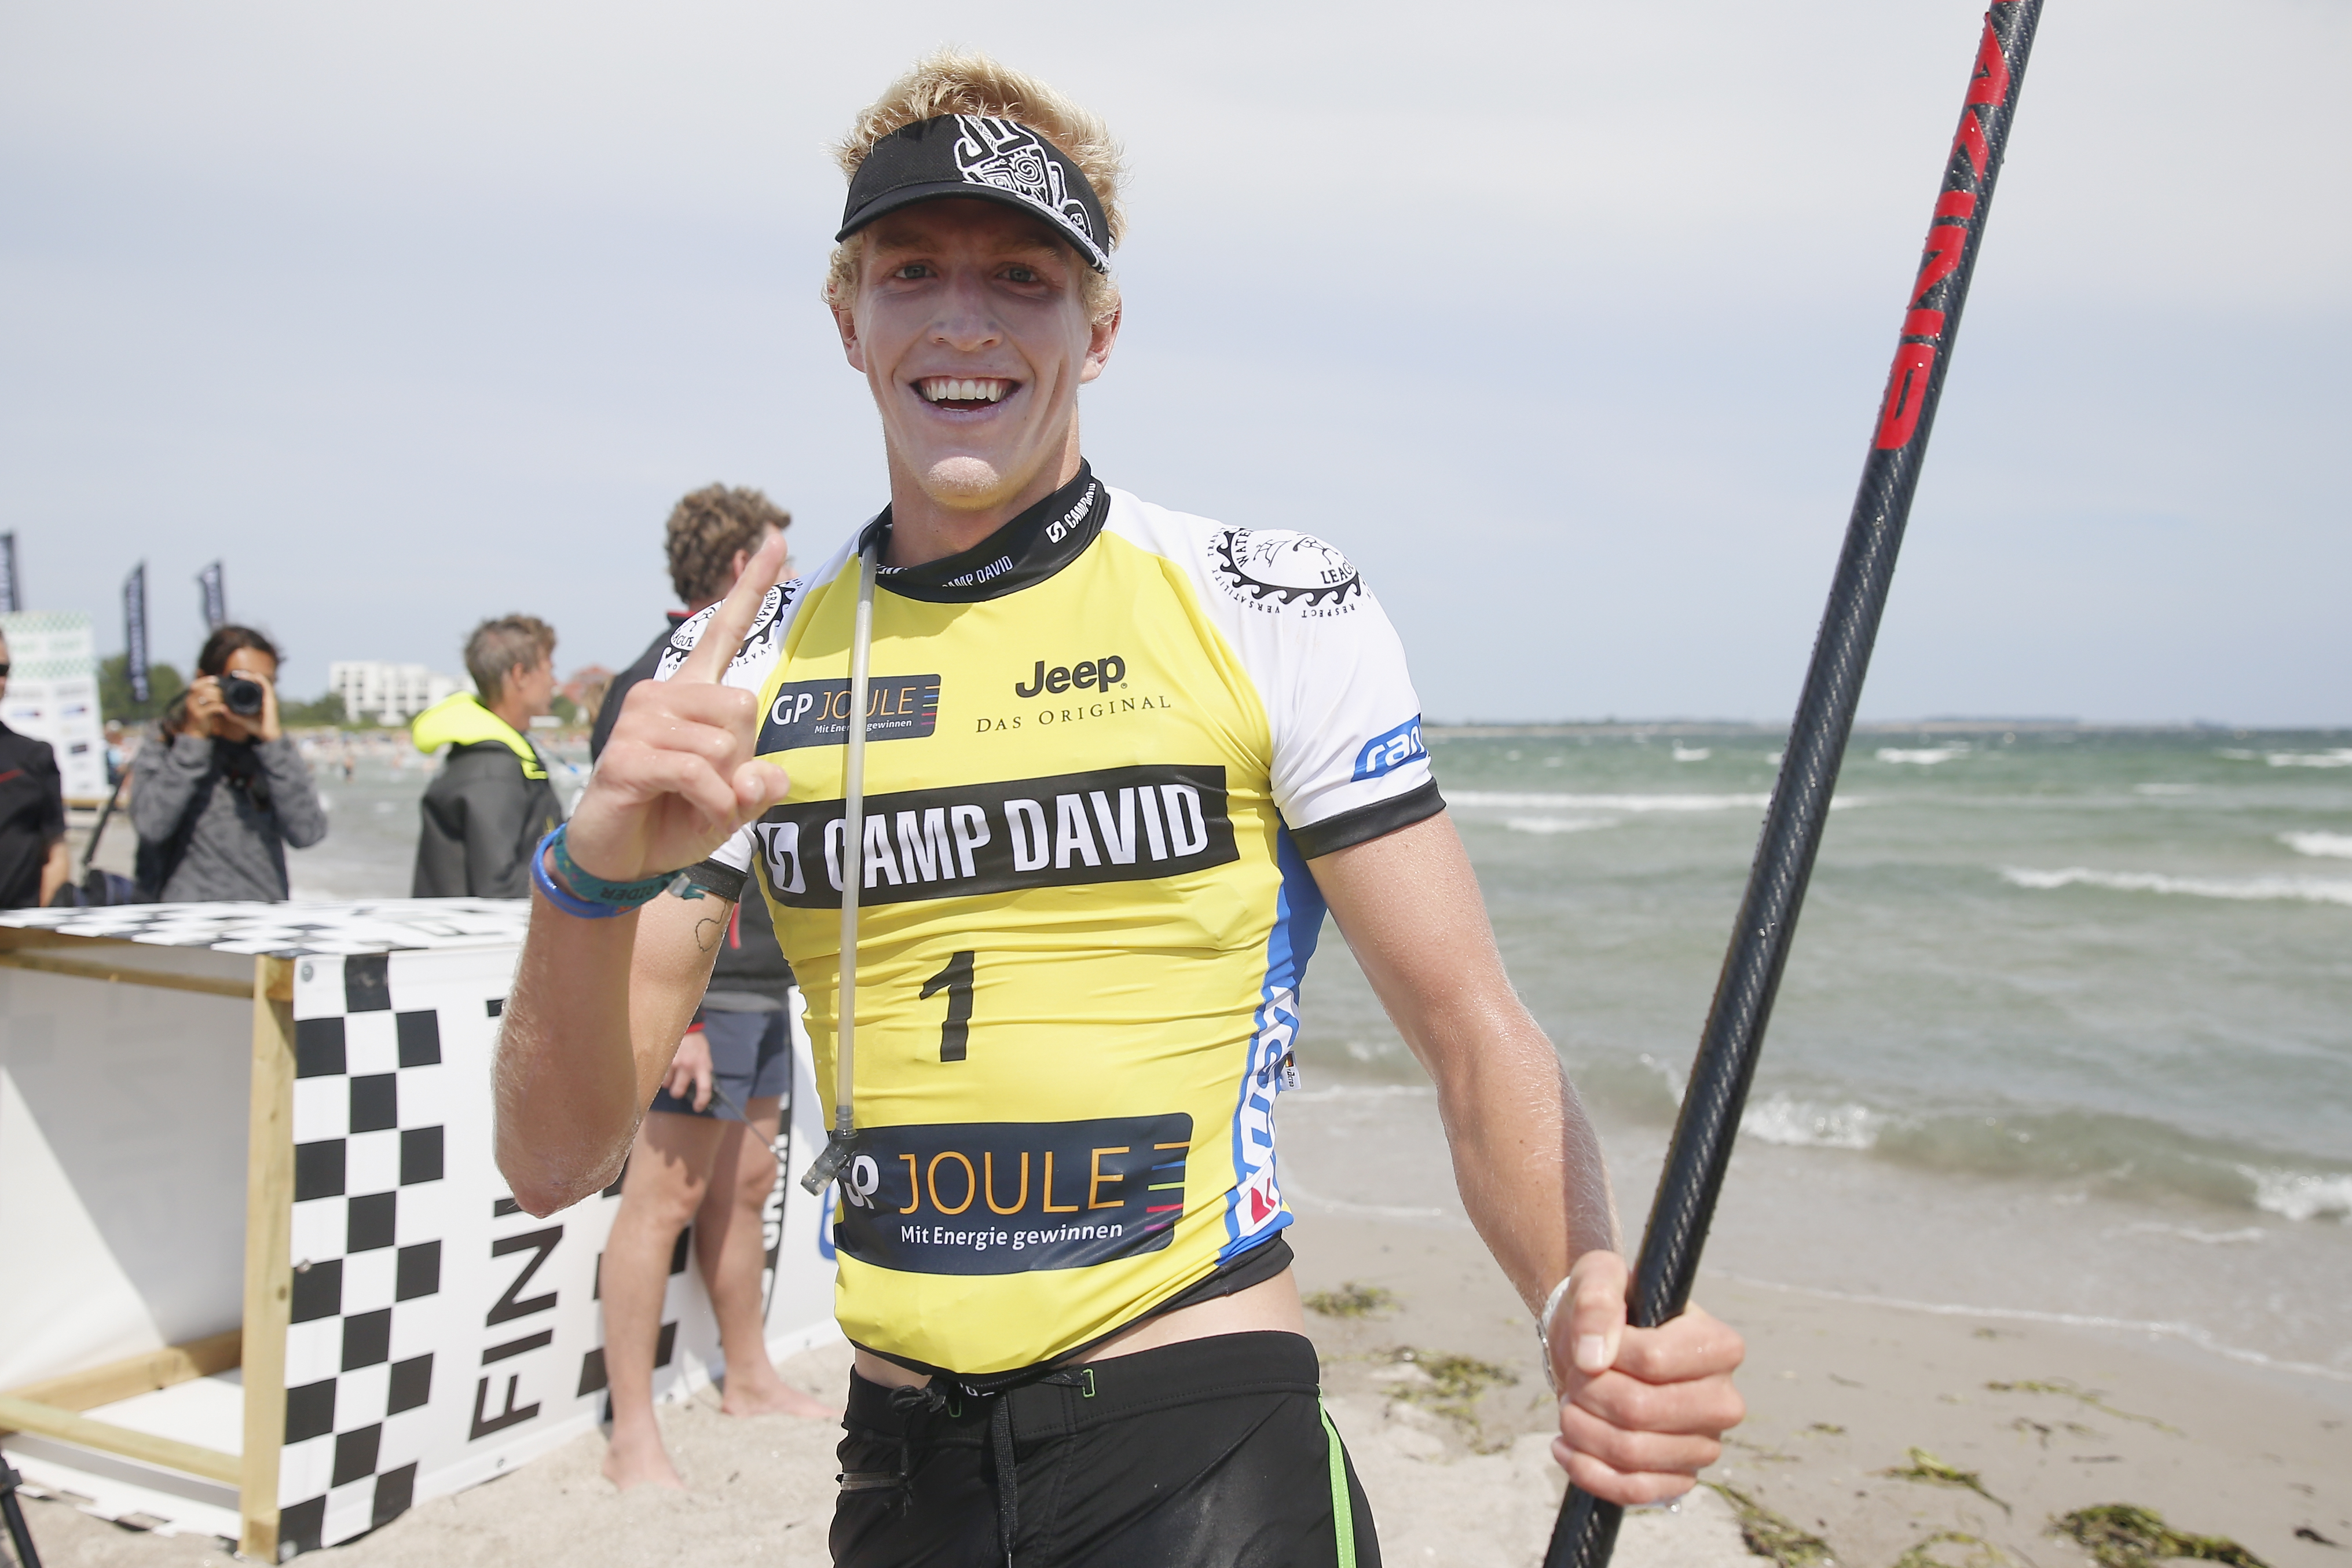 CAMP DAVID SUP World Cup Fehmarn Südstrand